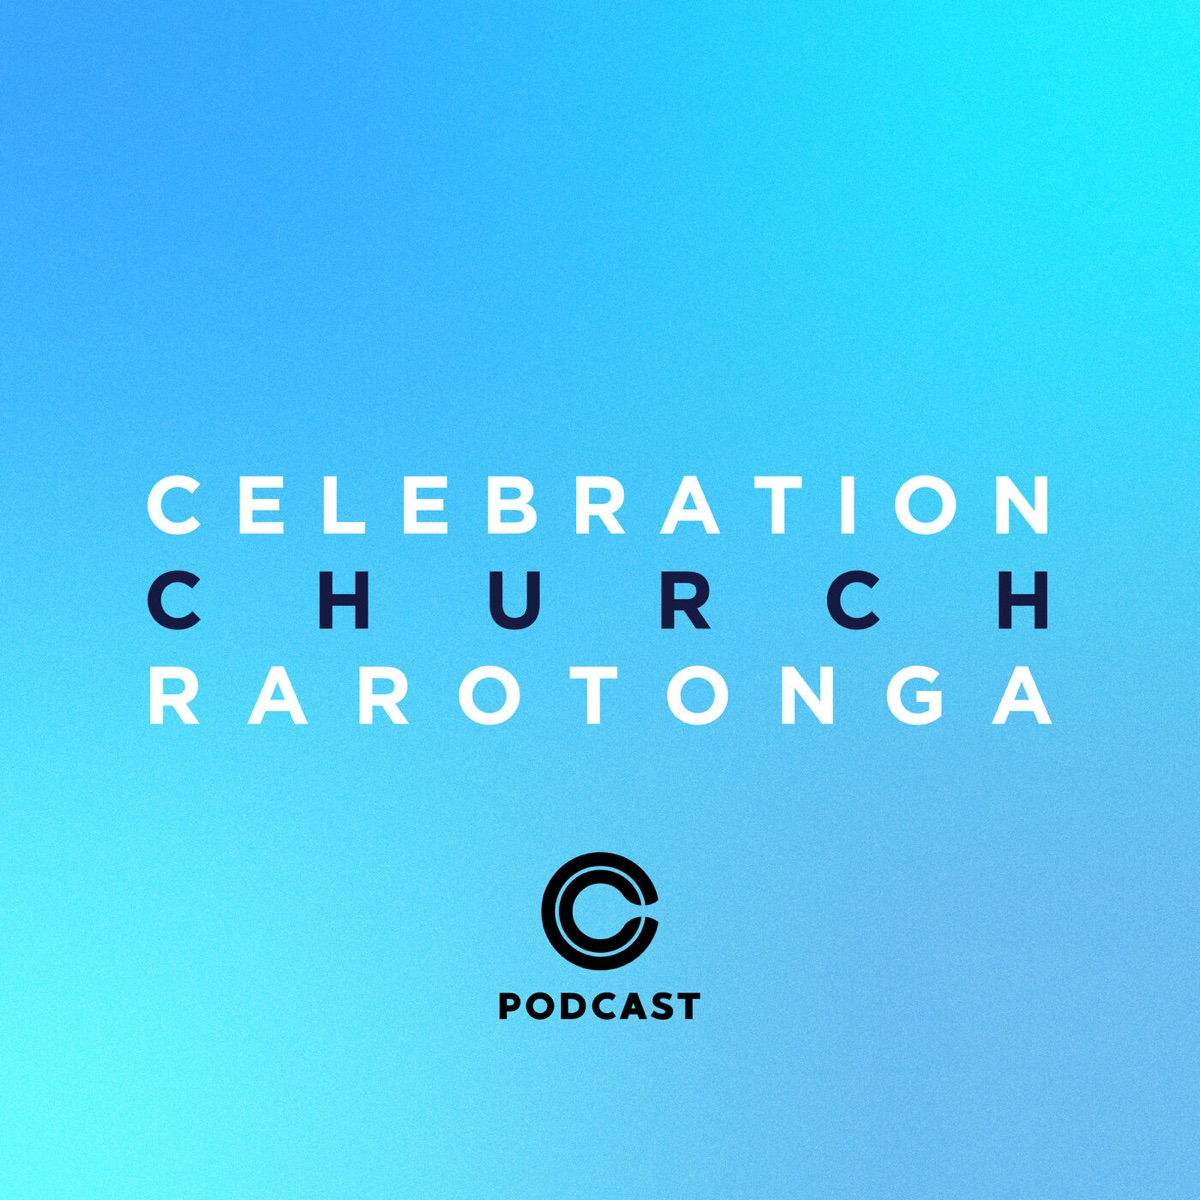 Celebration Church Rarotonga